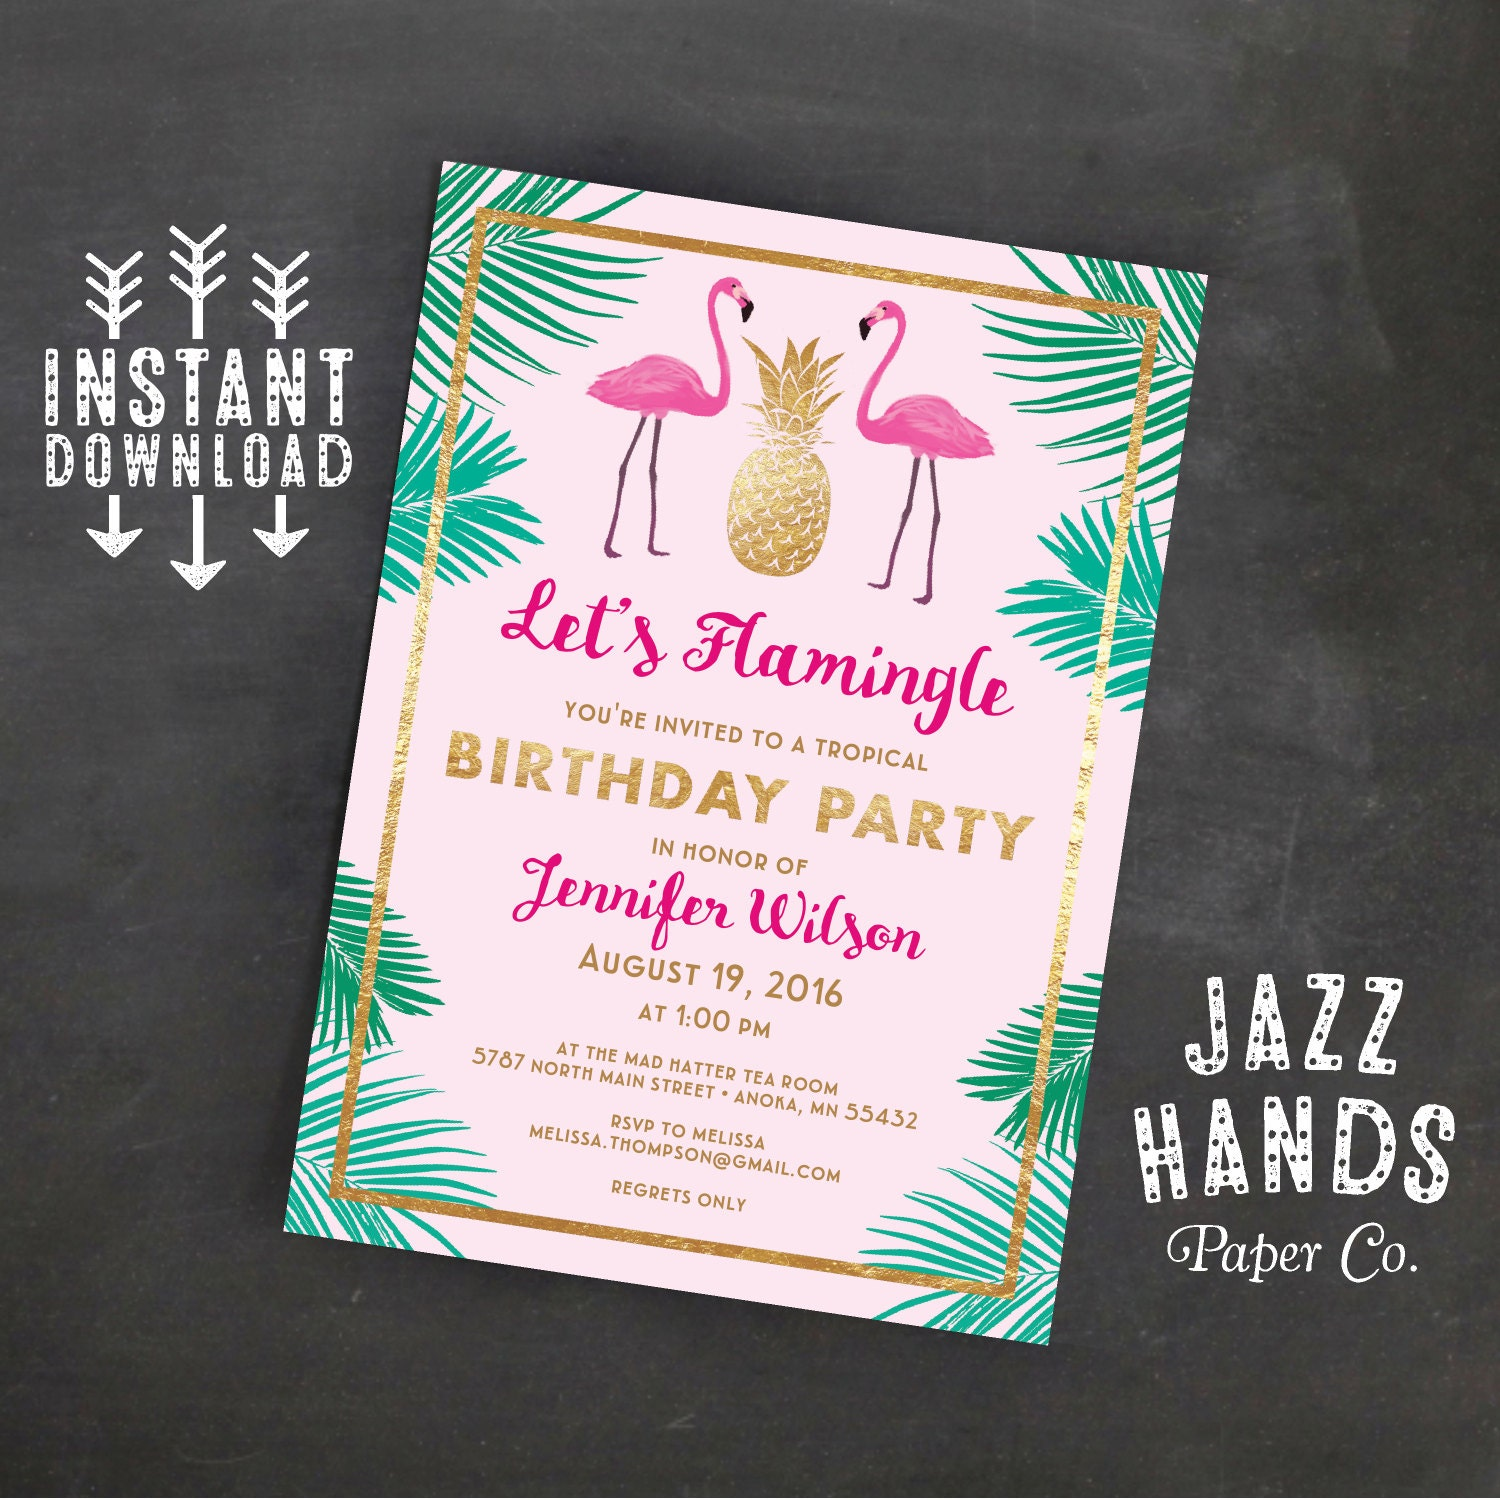 Lets flamingle printable birthday invitation template zoom filmwisefo Image collections